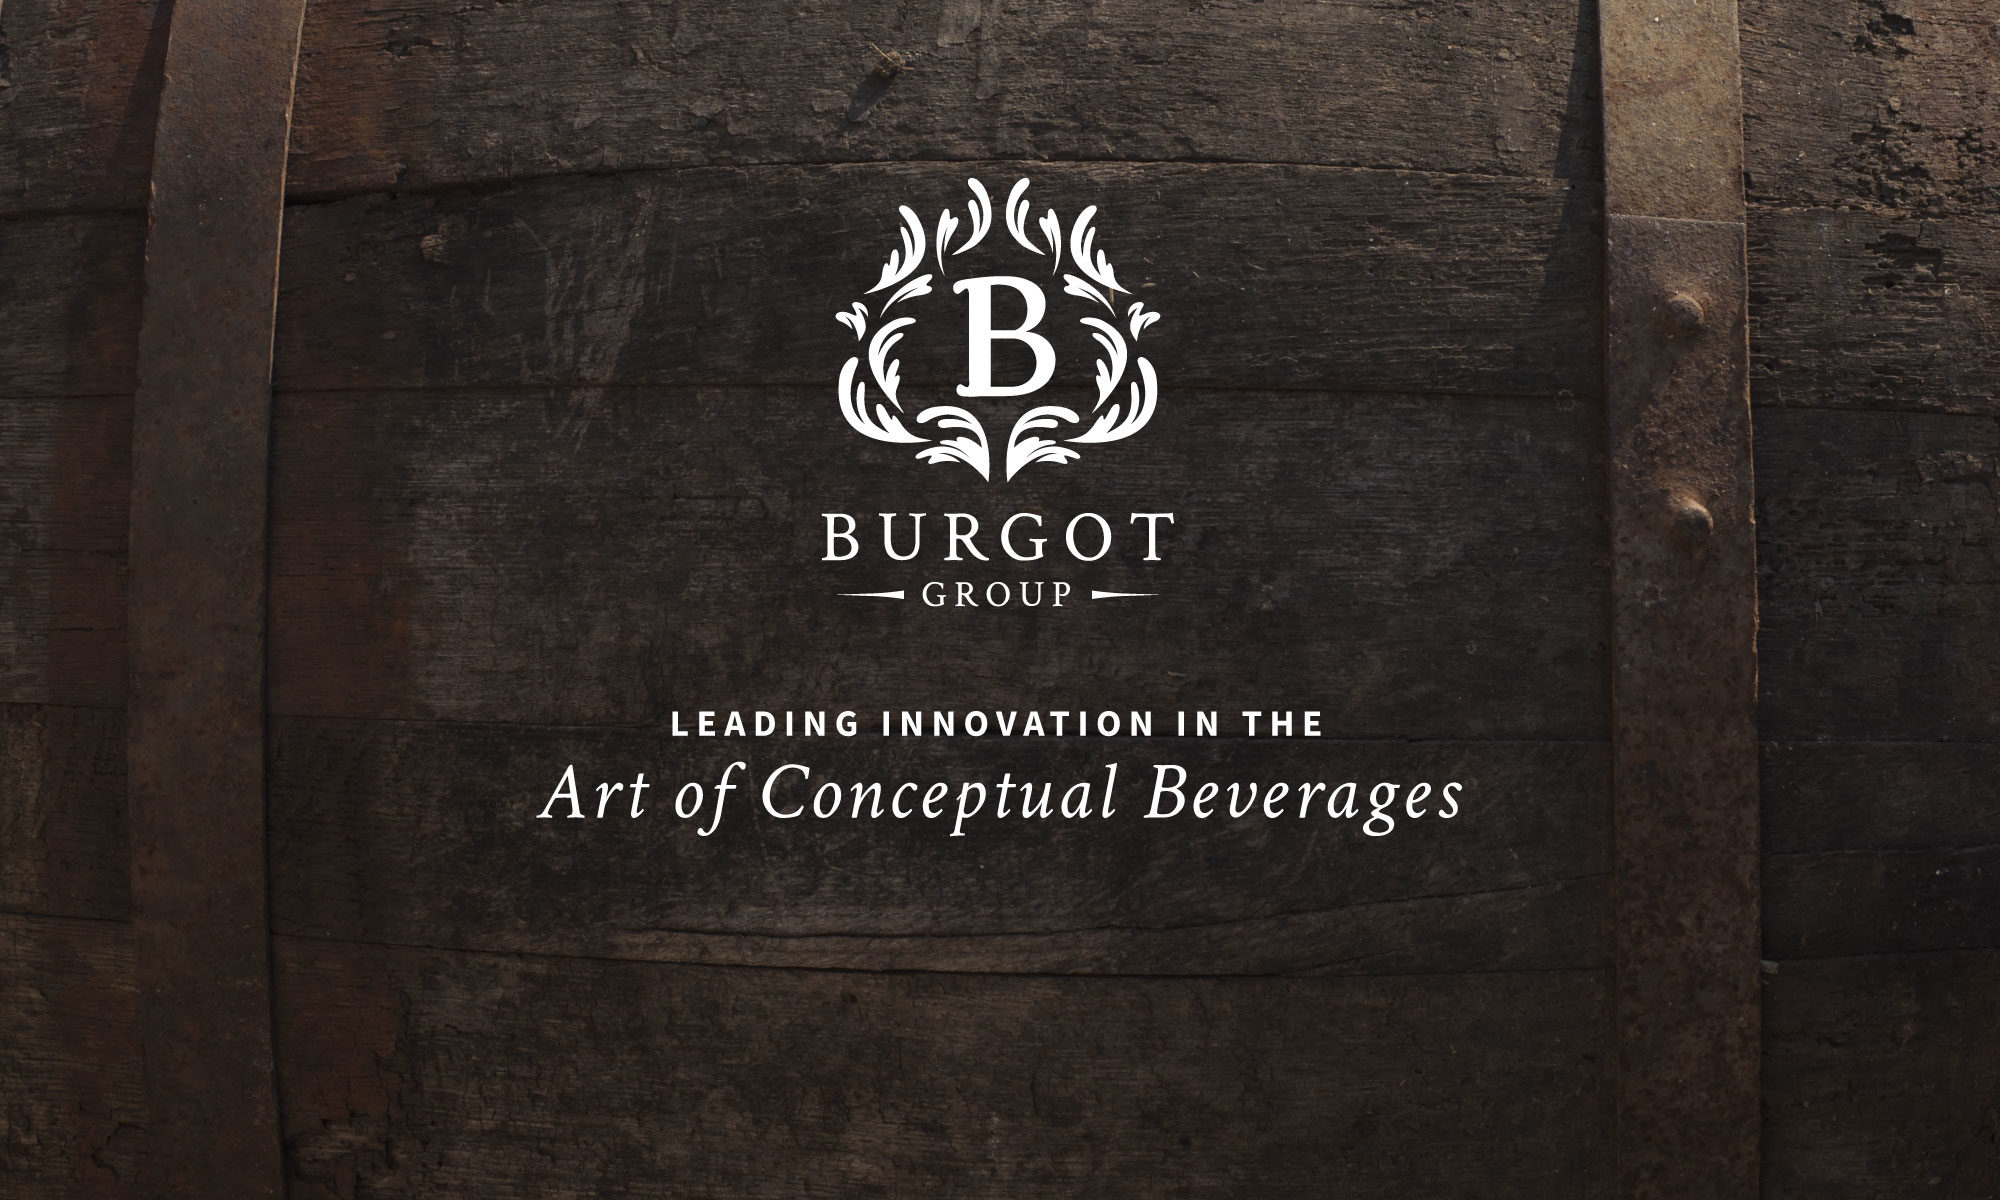 BURGOT GROUP